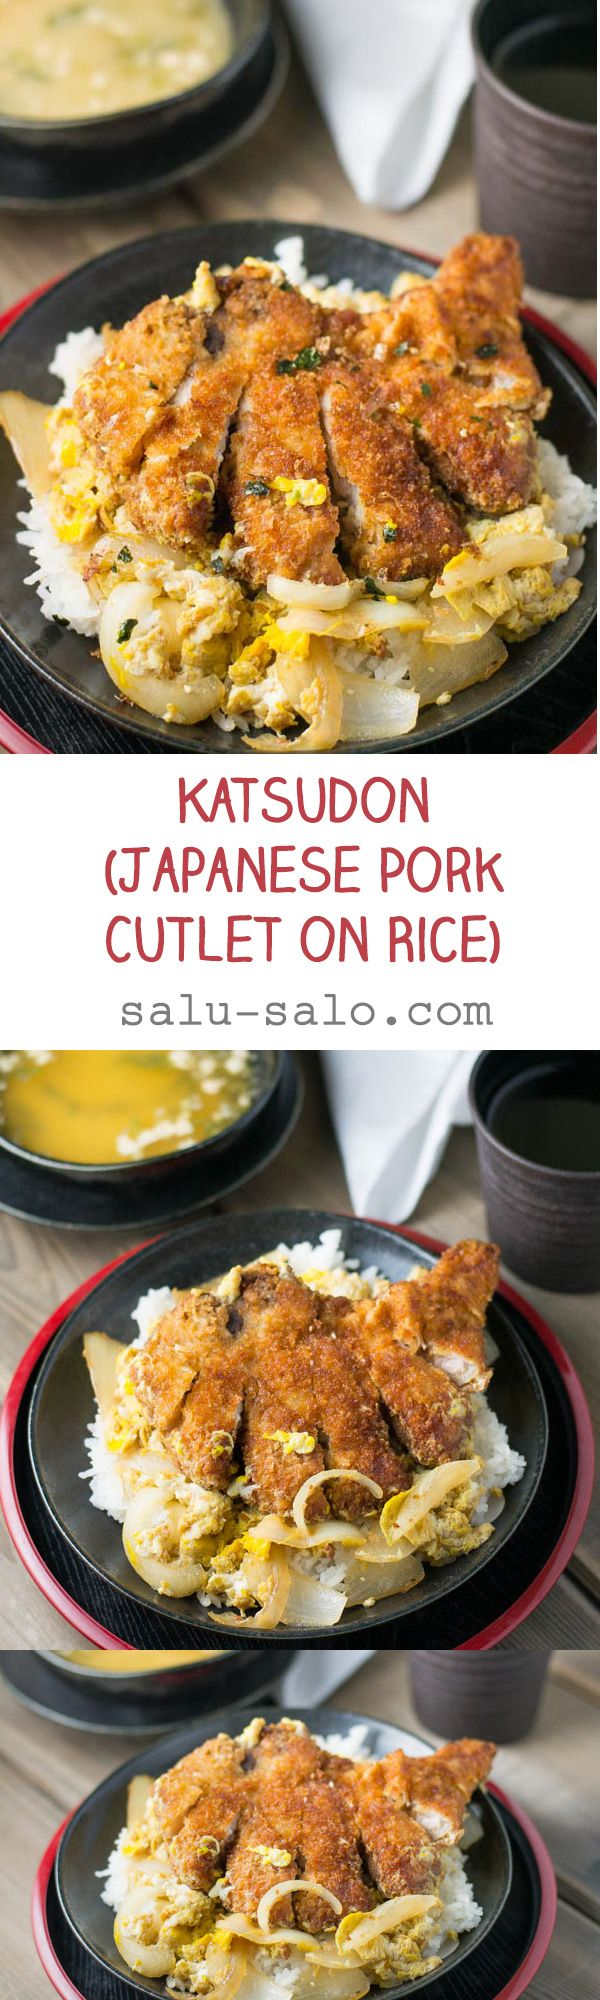 Katsudon (Japanese Pork Cutlet on Rice)